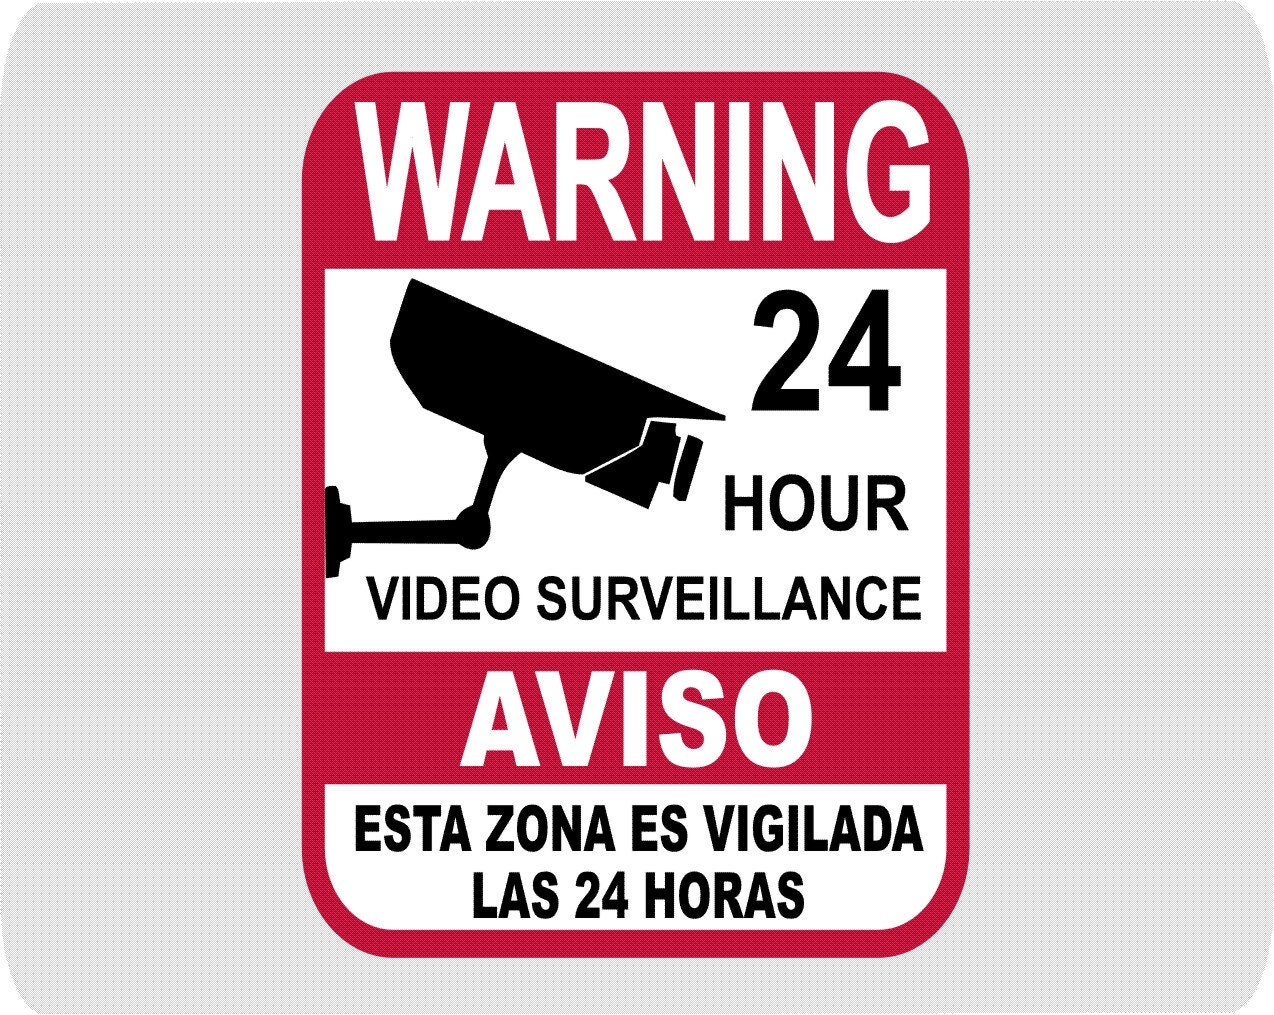 Metal Warning Security Cameras In Use Business Home